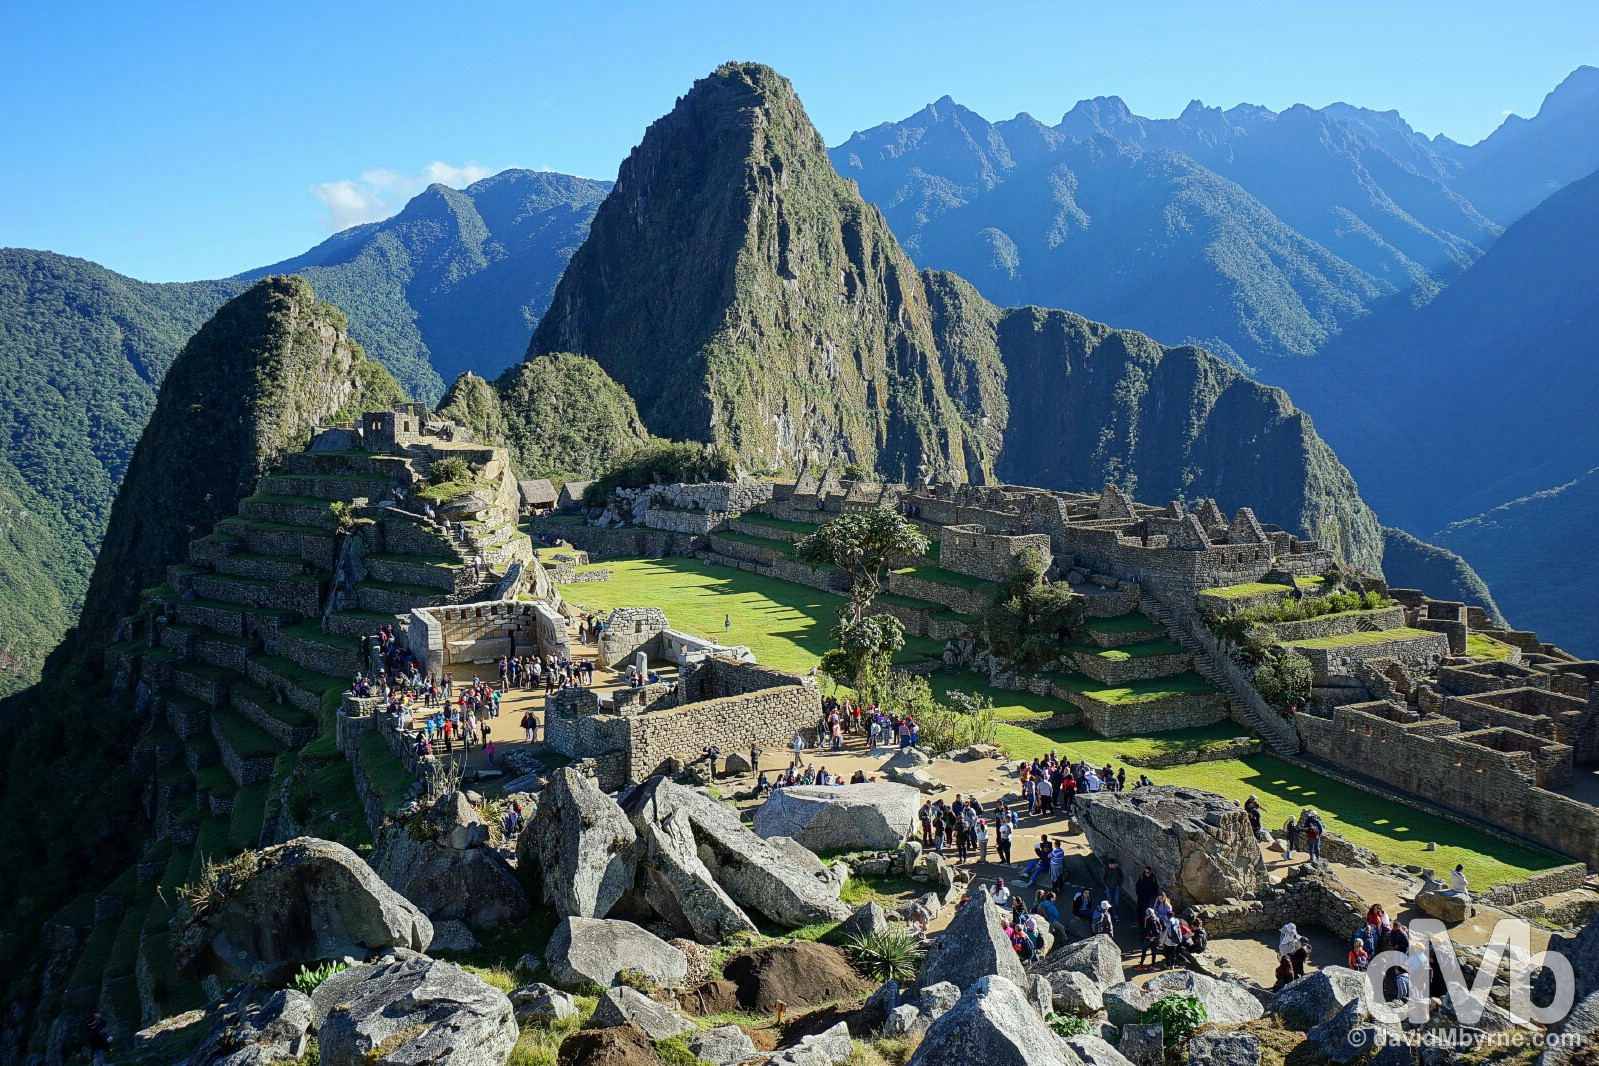 Early morning in Machu Picchu, Peru. August 15, 2015.